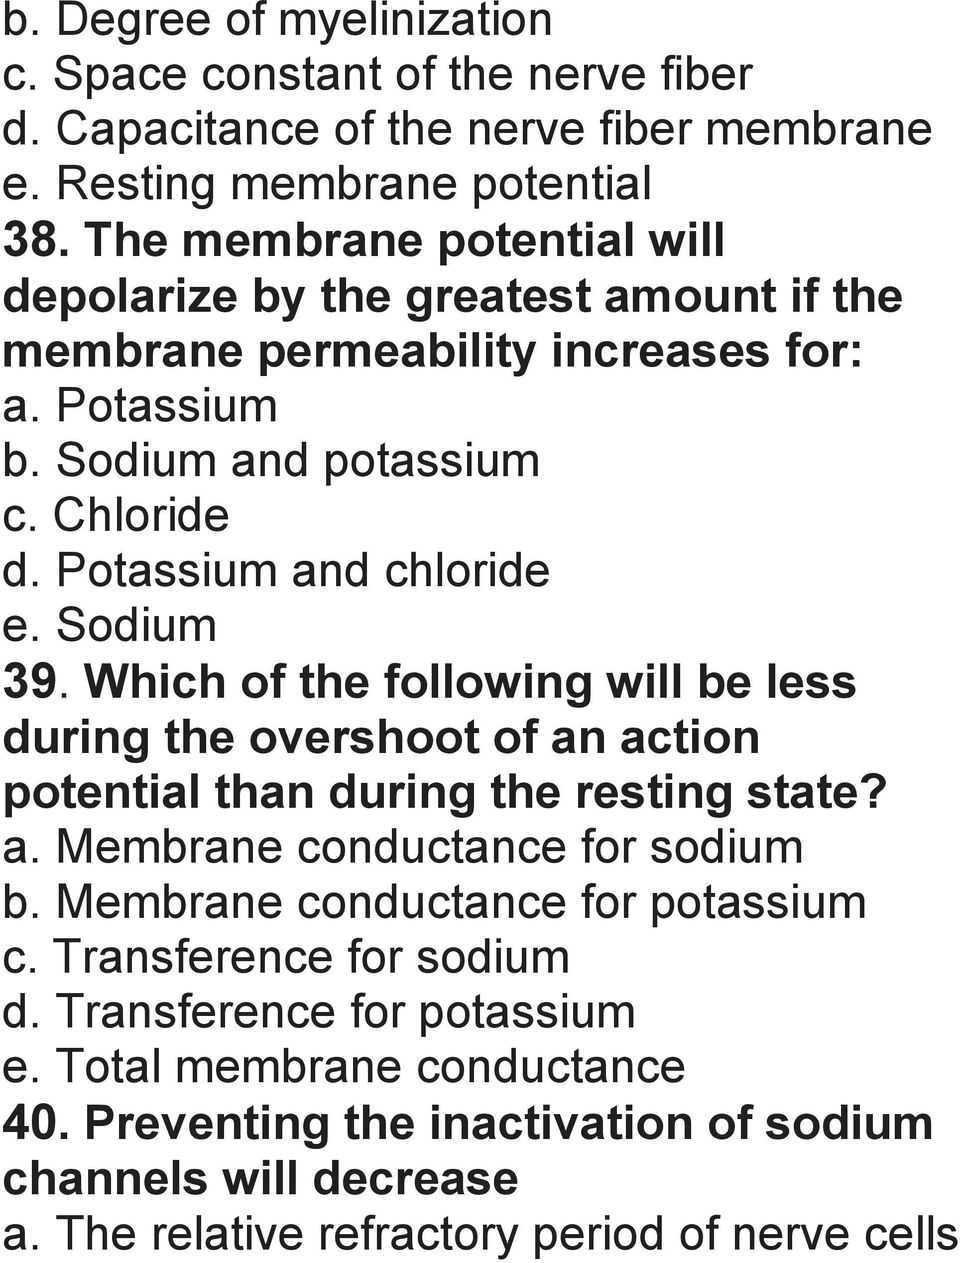 Potassium and chloride e. Sodium 39. Which of the following will be less during the overshoot of an action potential than during the resting state? a. Membrane conductance for sodium b.